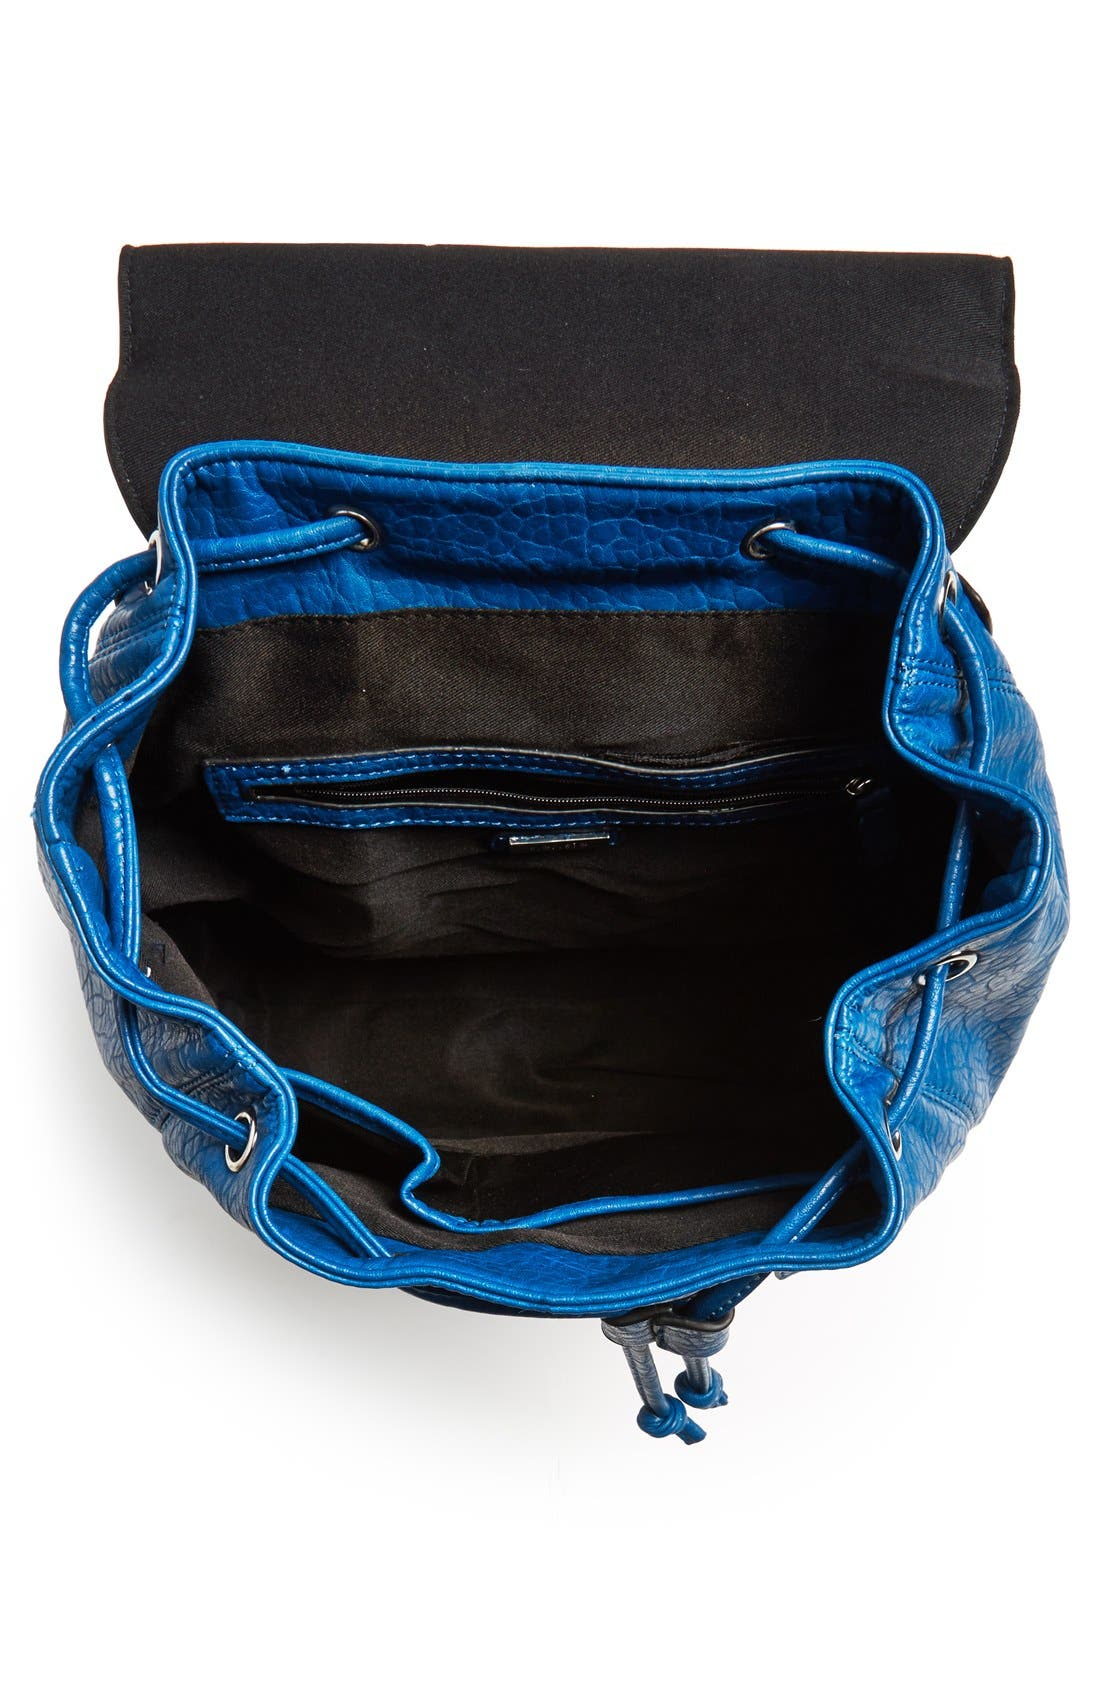 Alternate Image 3  - kensie 'Perfectly Pebbled' Faux Leather Backpack